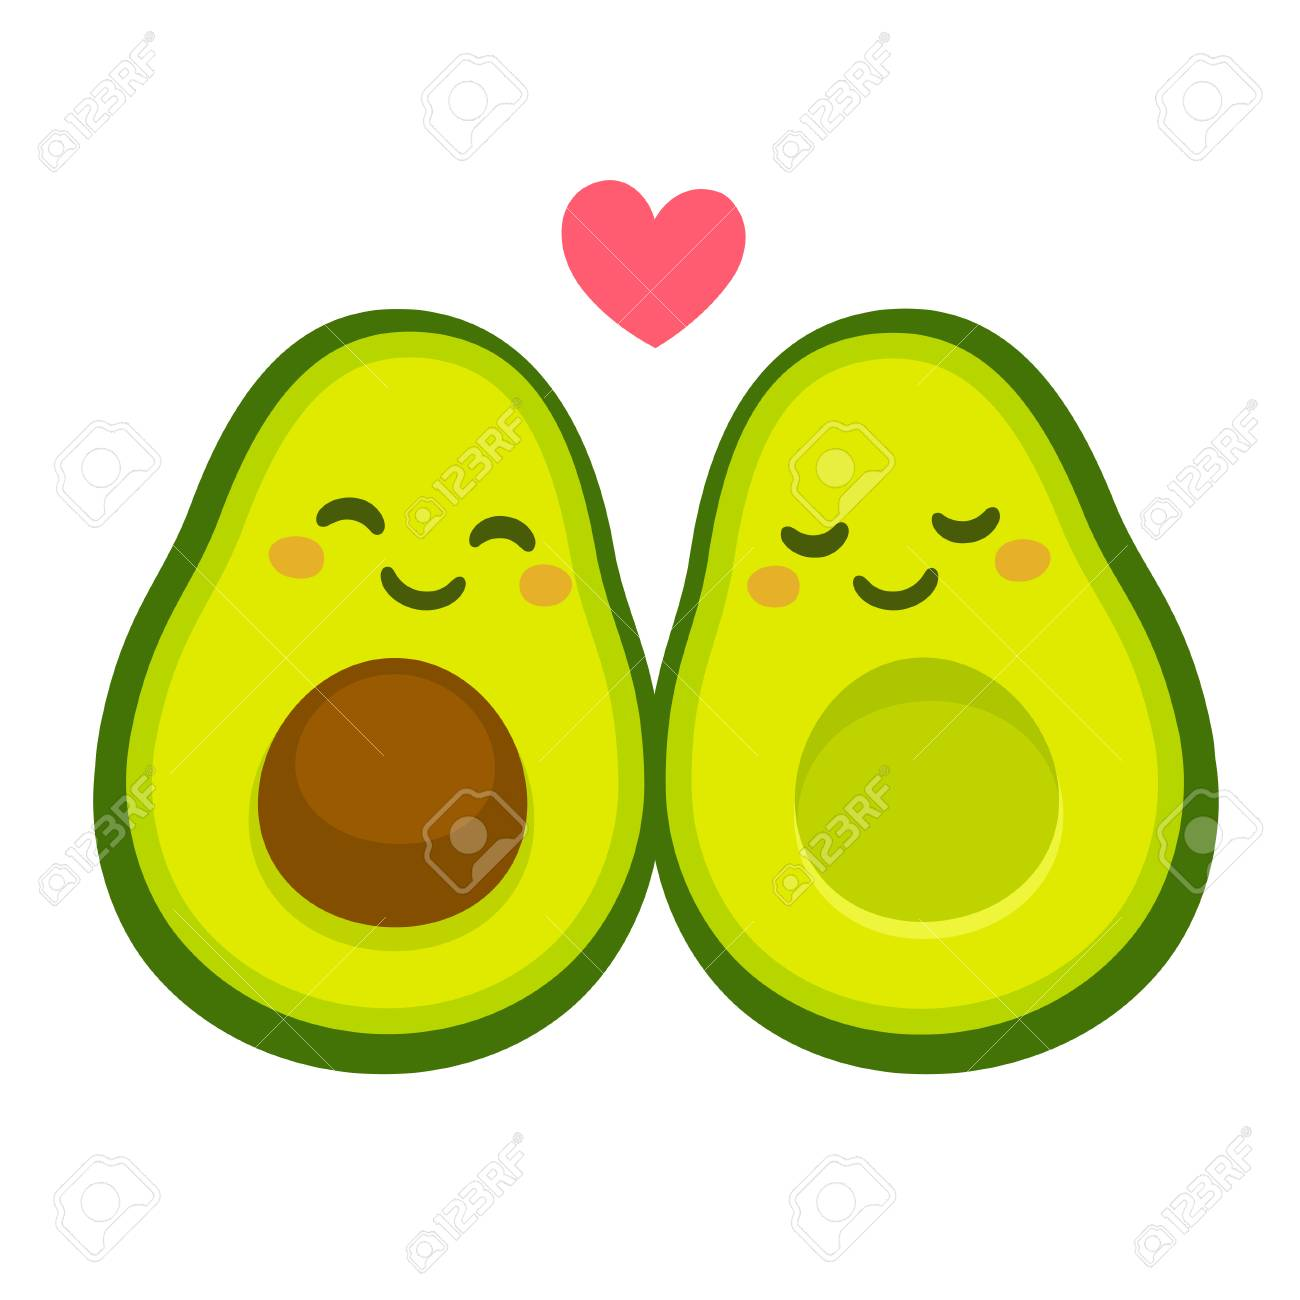 102953800 cute cartoon avocado couple in love avocuddle two avocado halves with heart st valentines day greeti